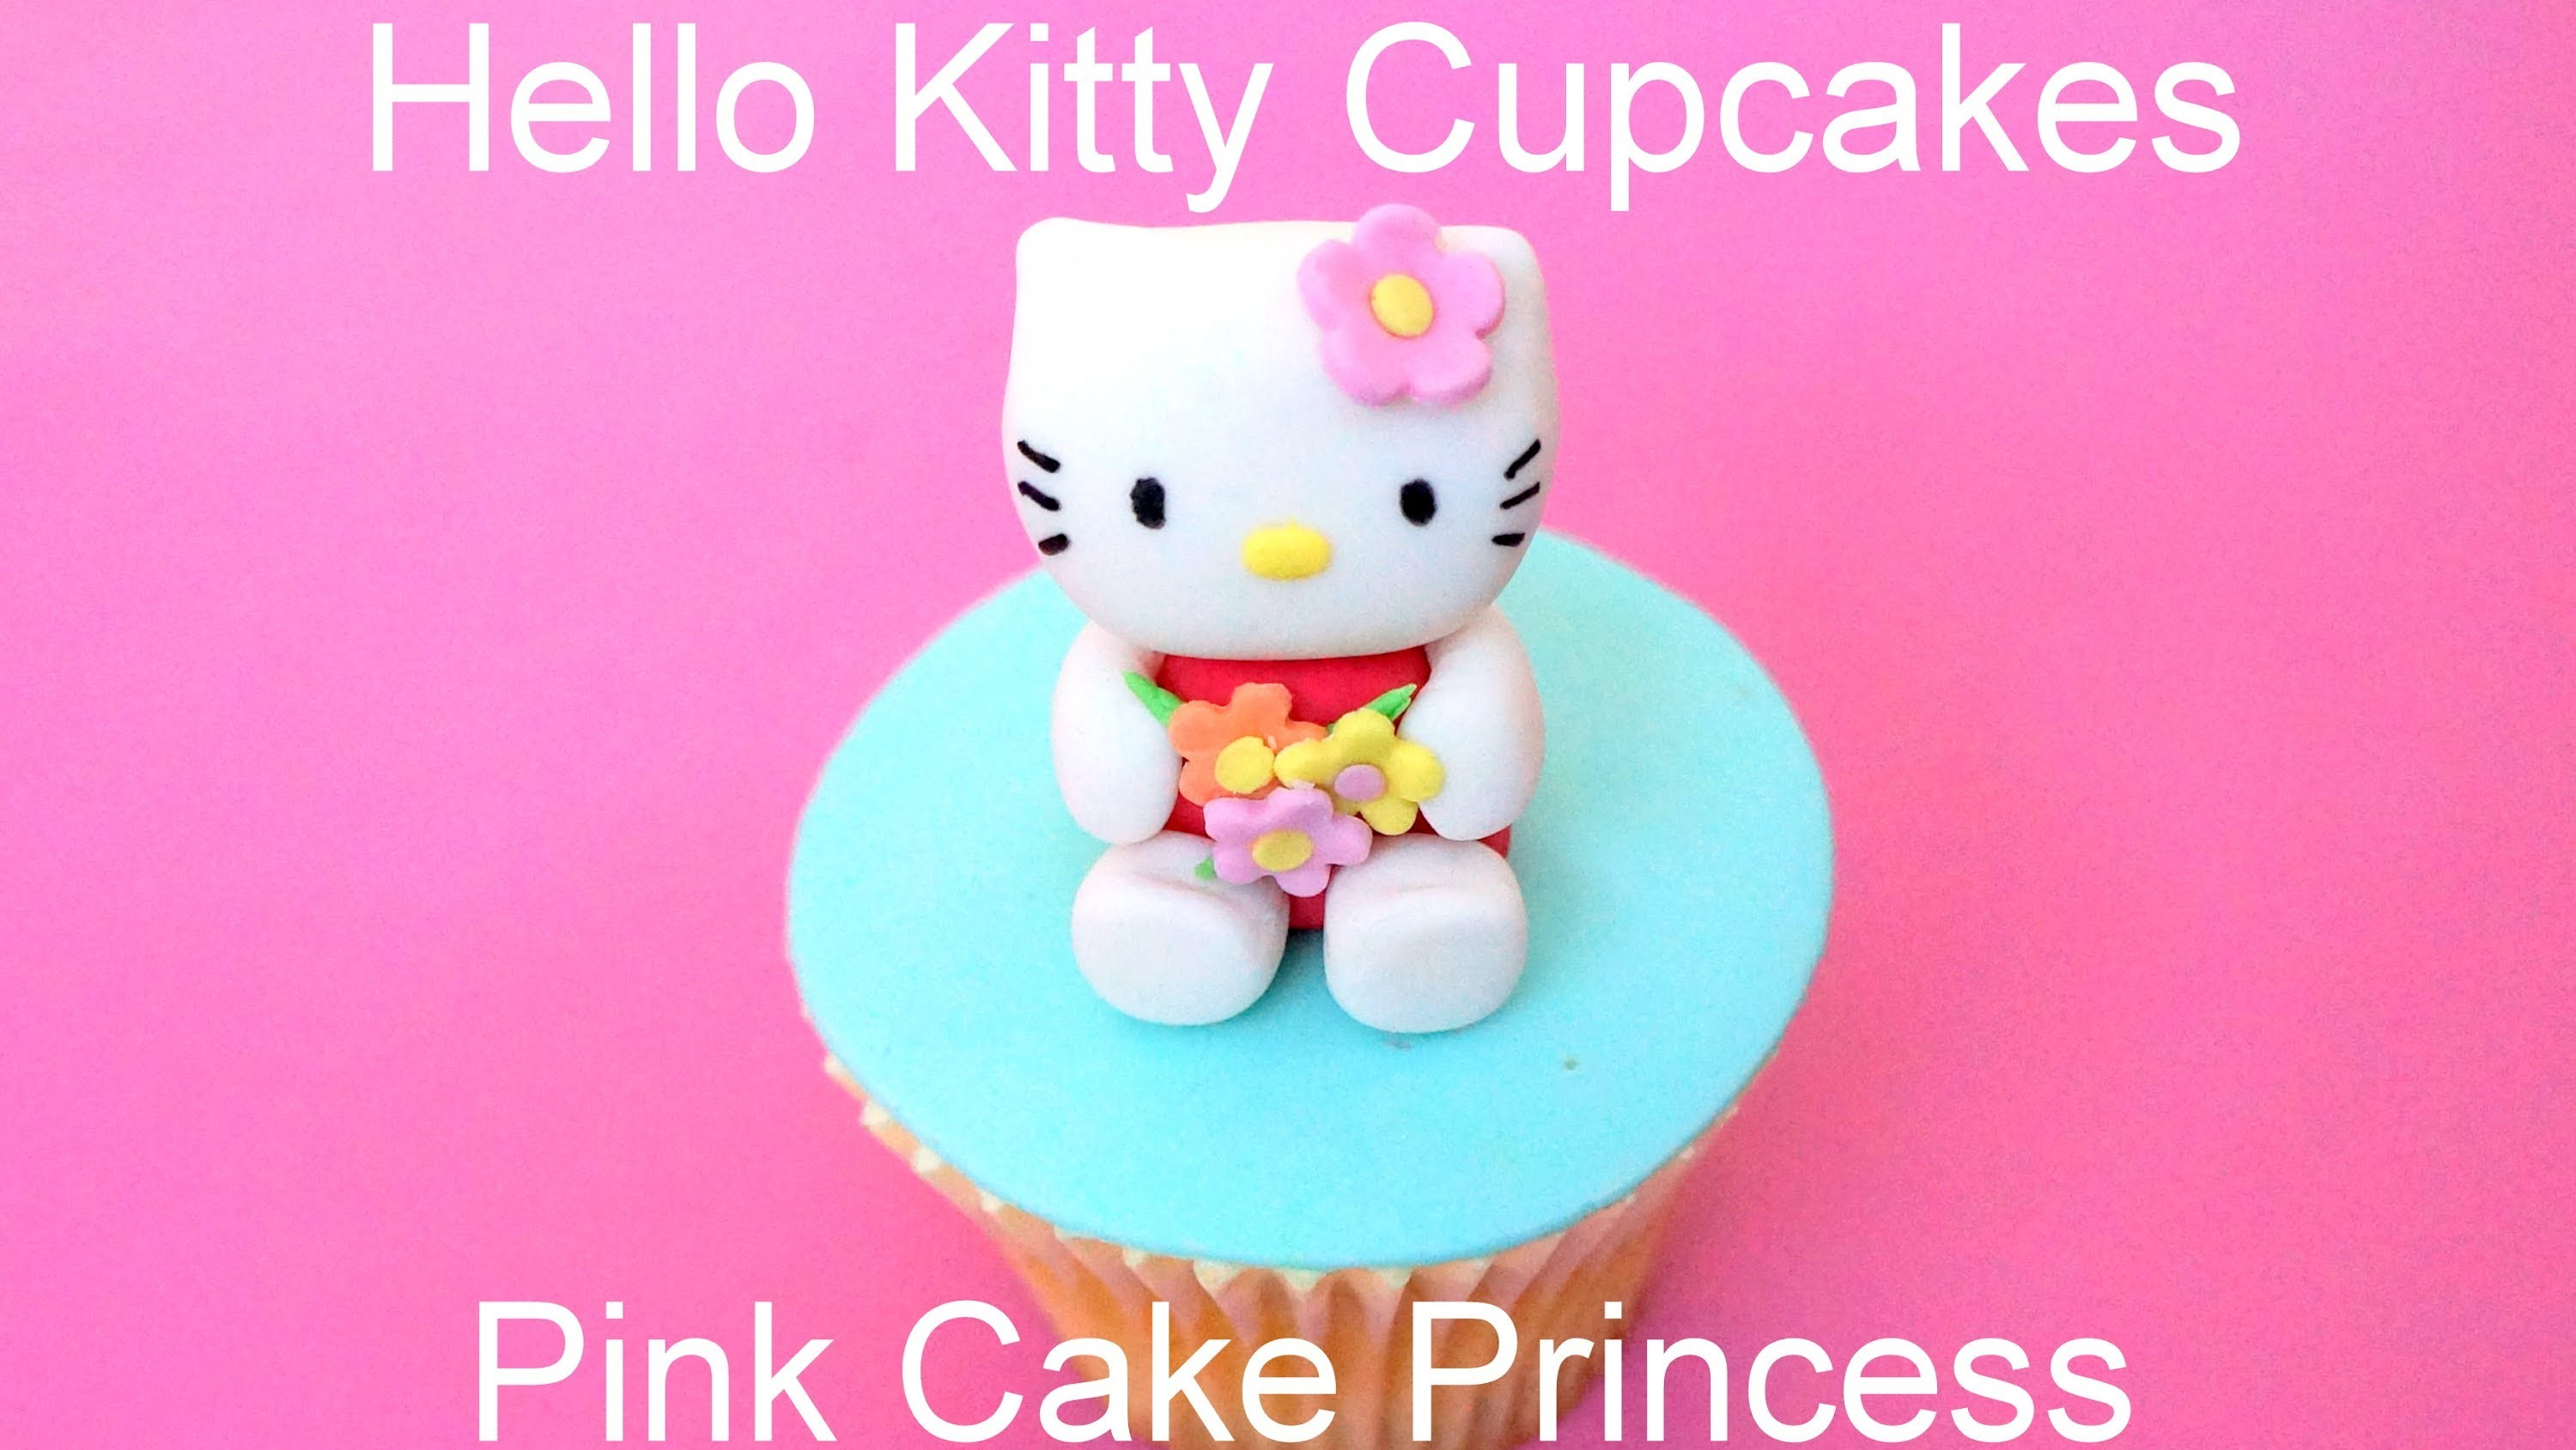 Hello Kitty Cupcake Figurine How to by Pink Cake Princess - Collaboration with CreativeCakesBySharon